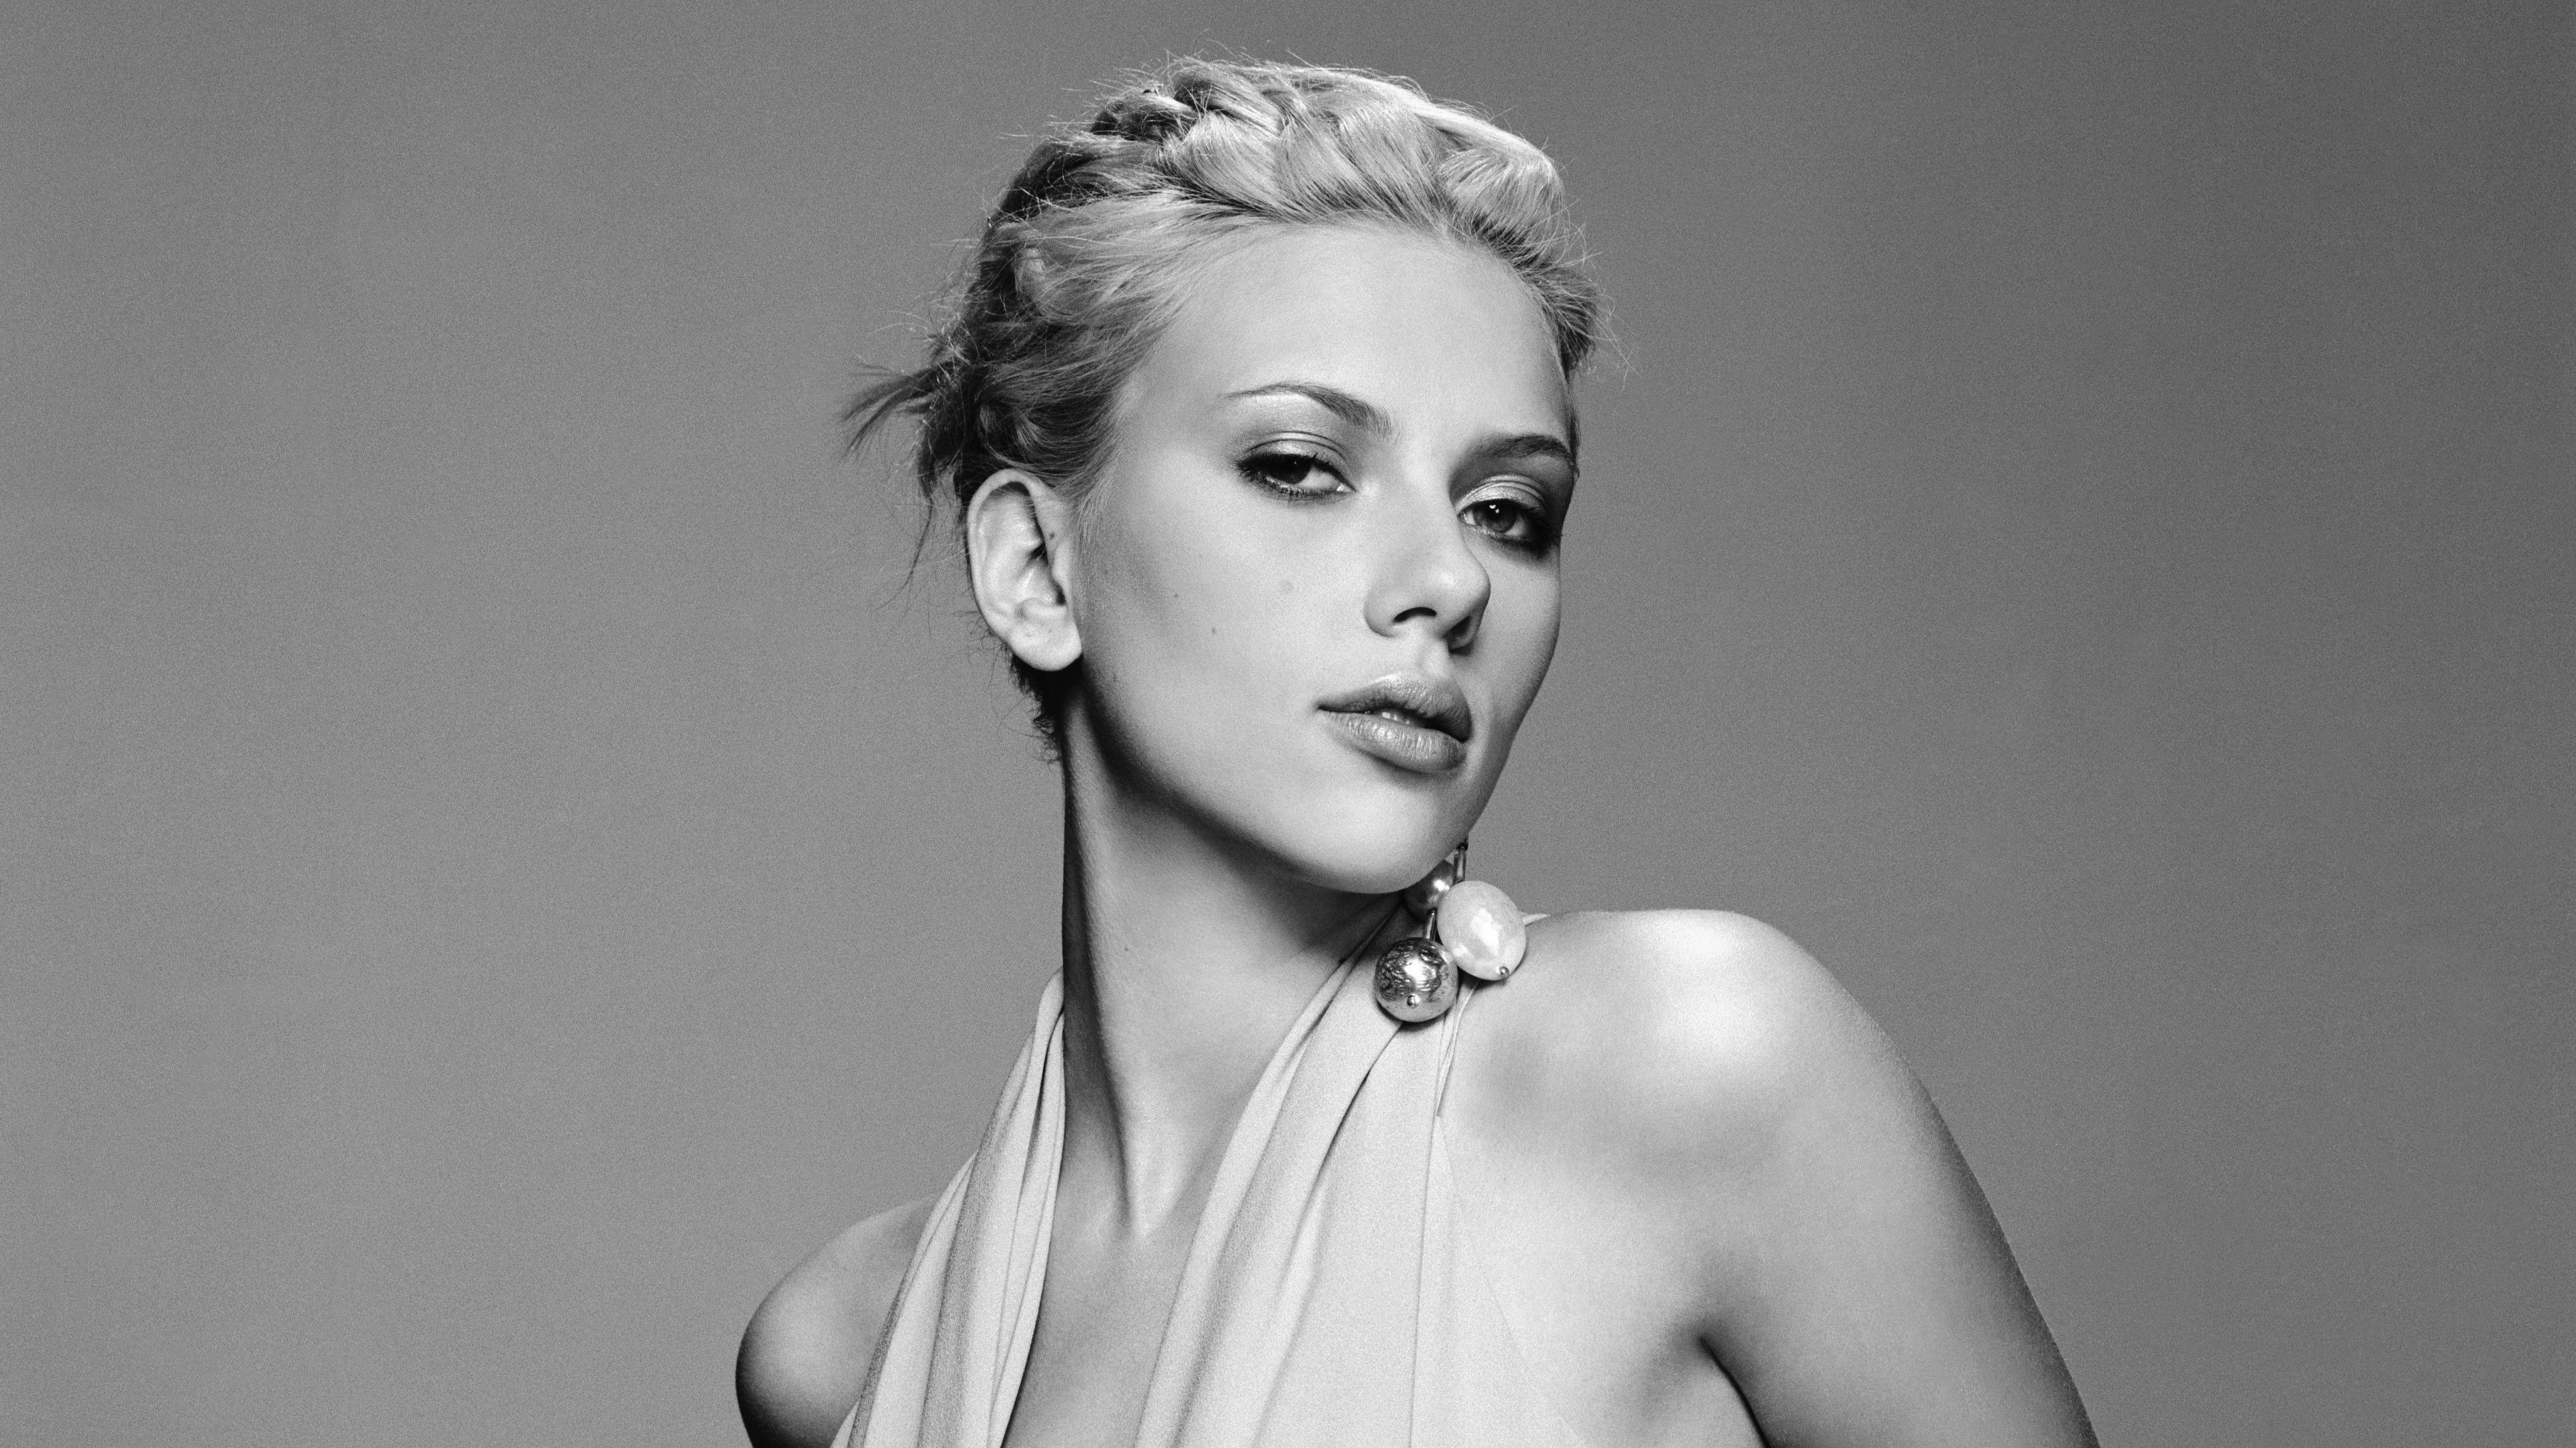 scarlett johansson black and white, hd celebrities, 4k wallpapers